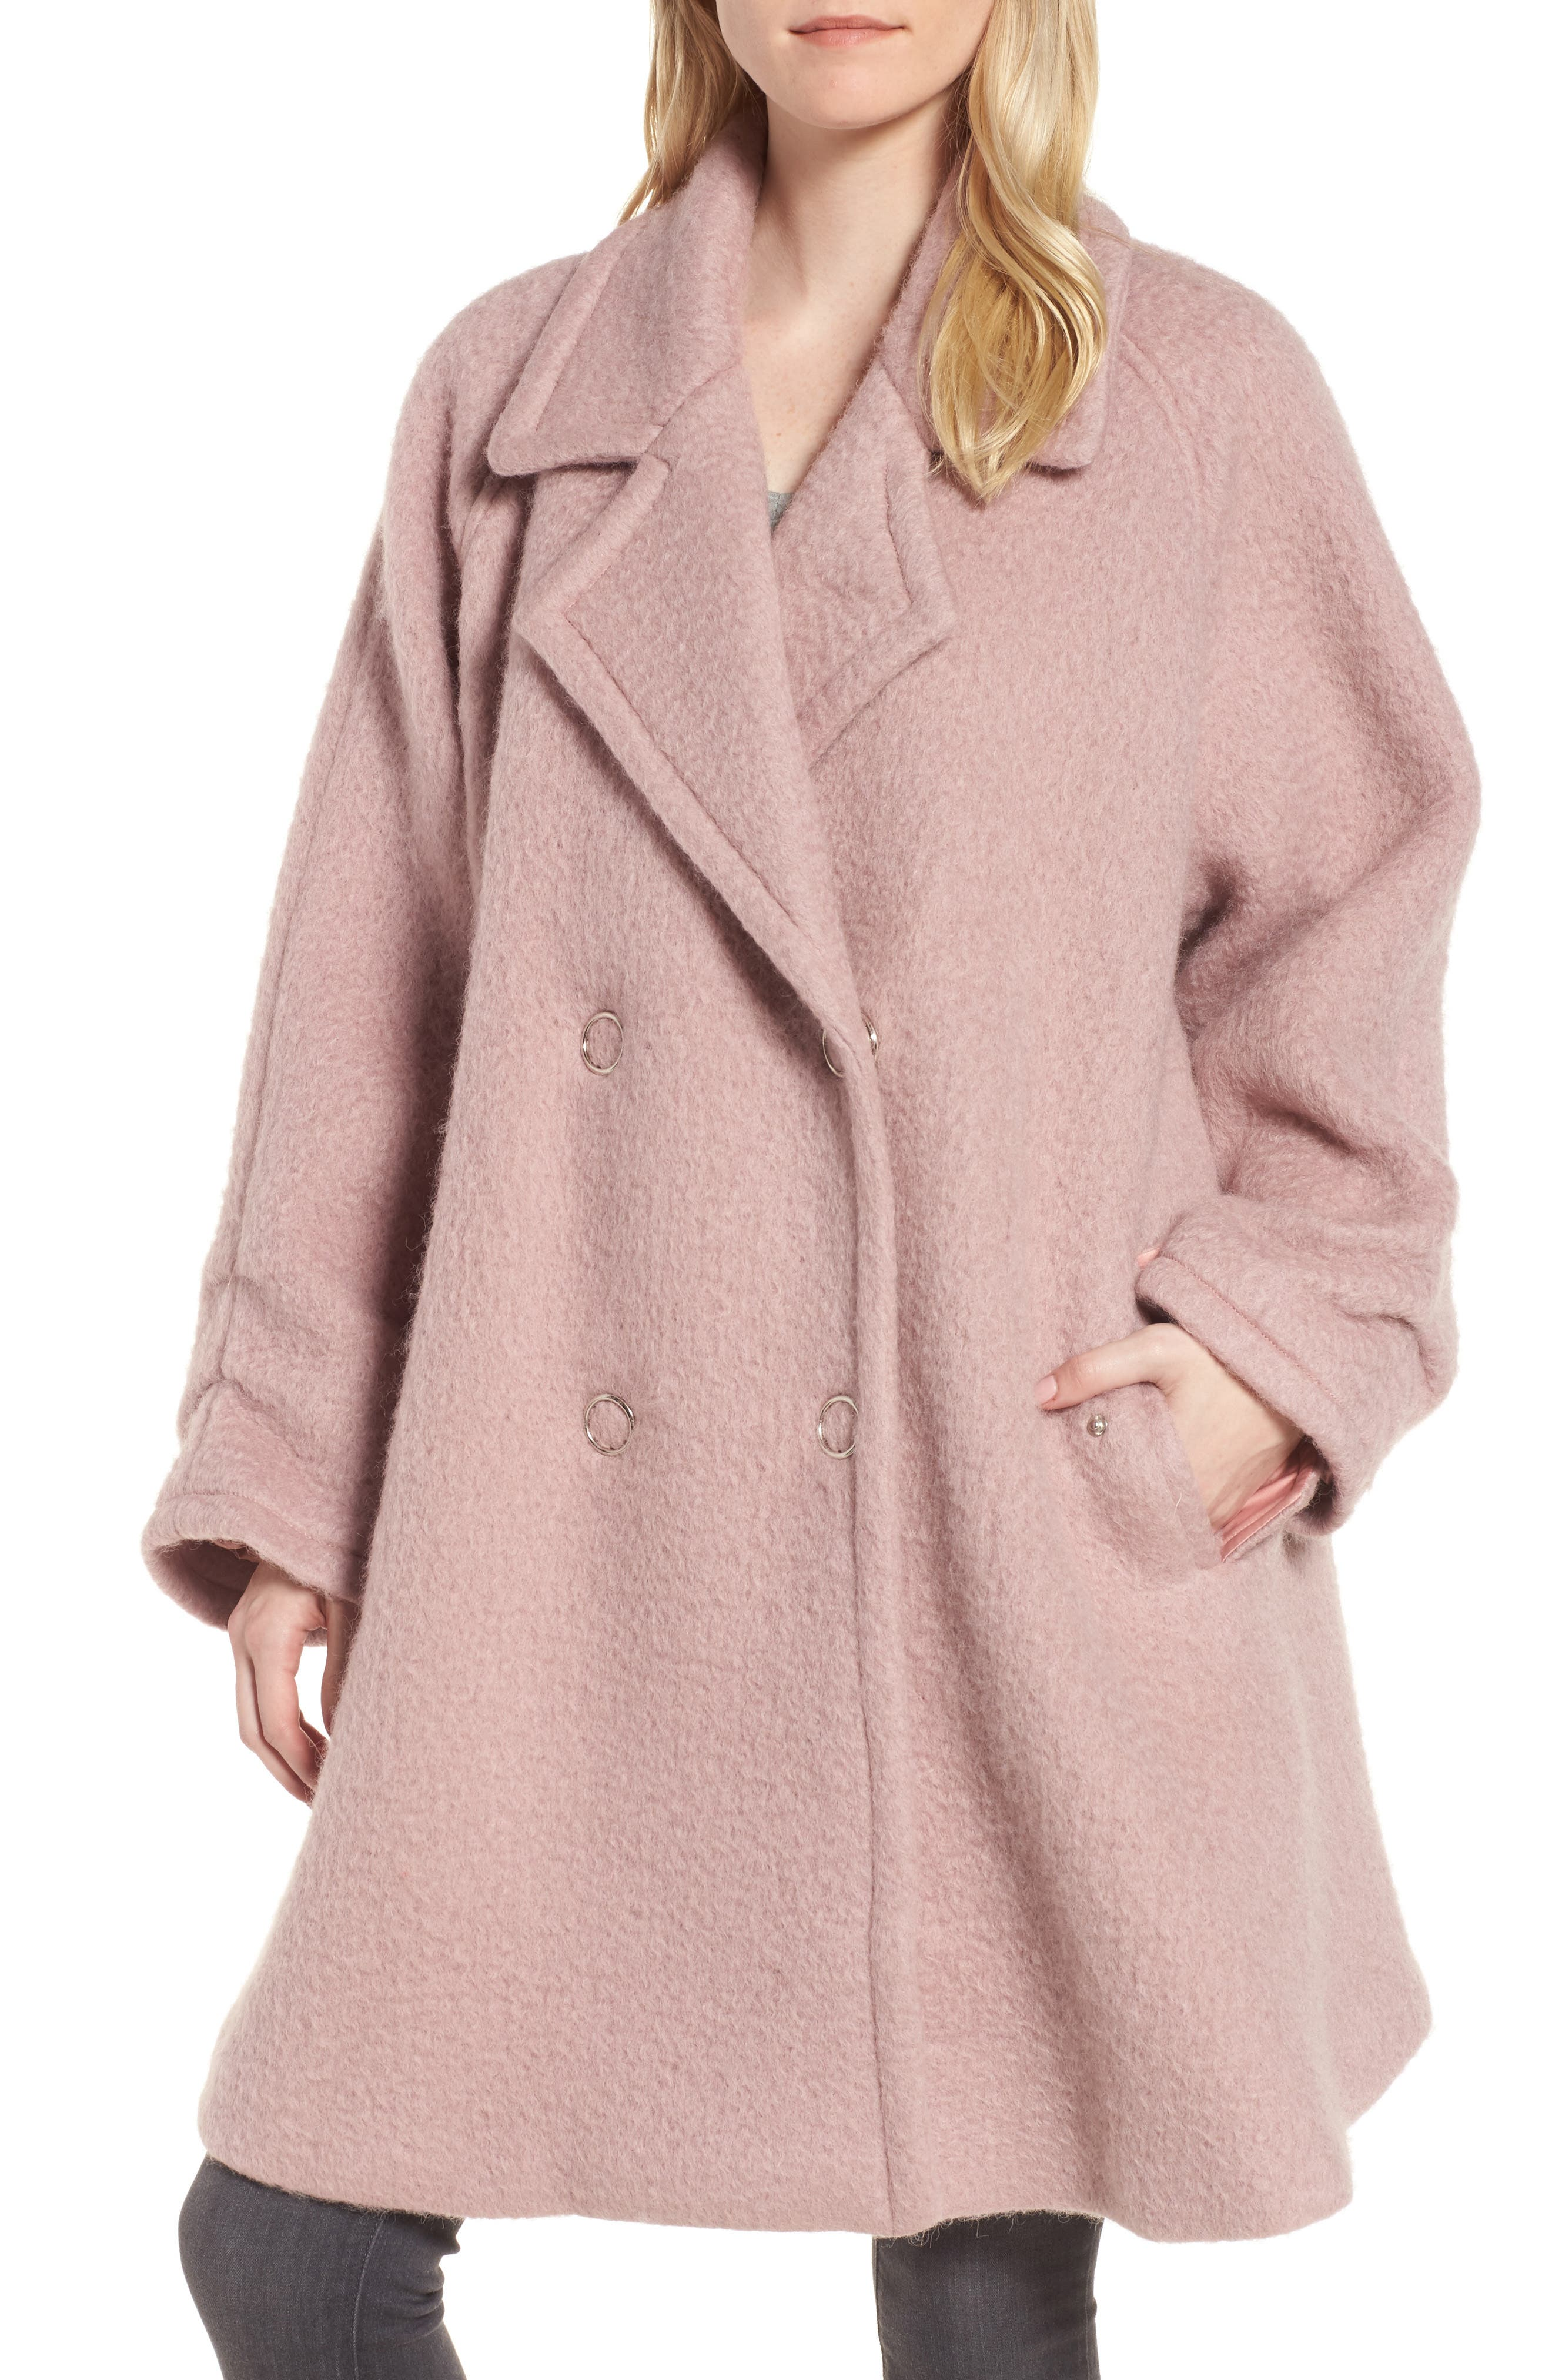 Swing Coat,                             Main thumbnail 1, color,                             Light Pink